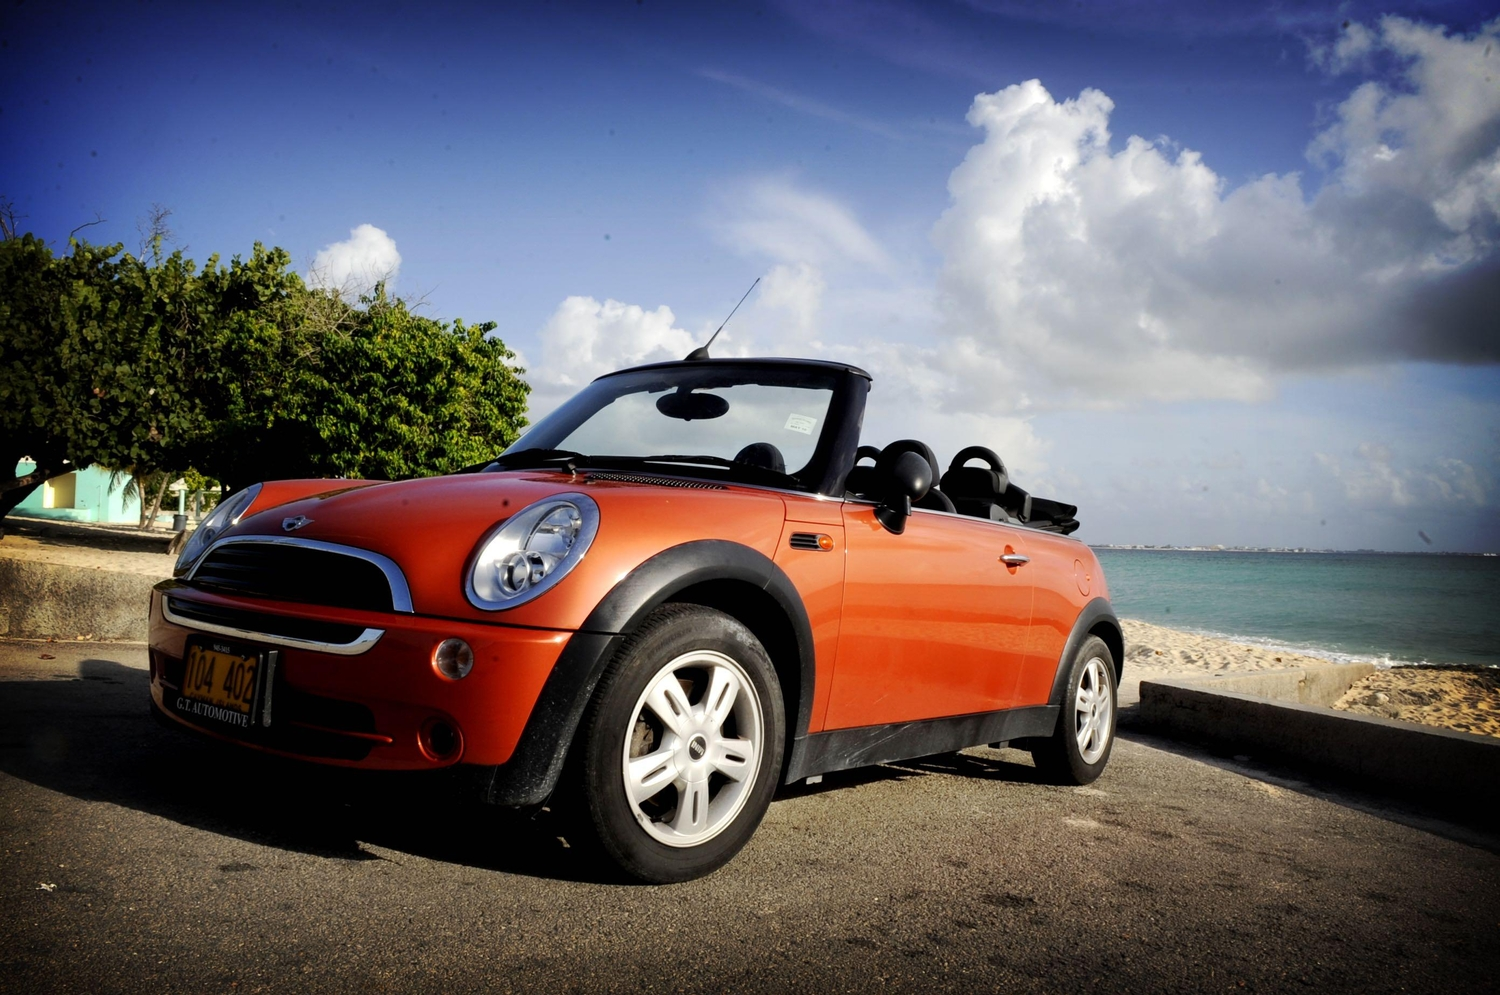 Orange mini cooper parked in front of the water